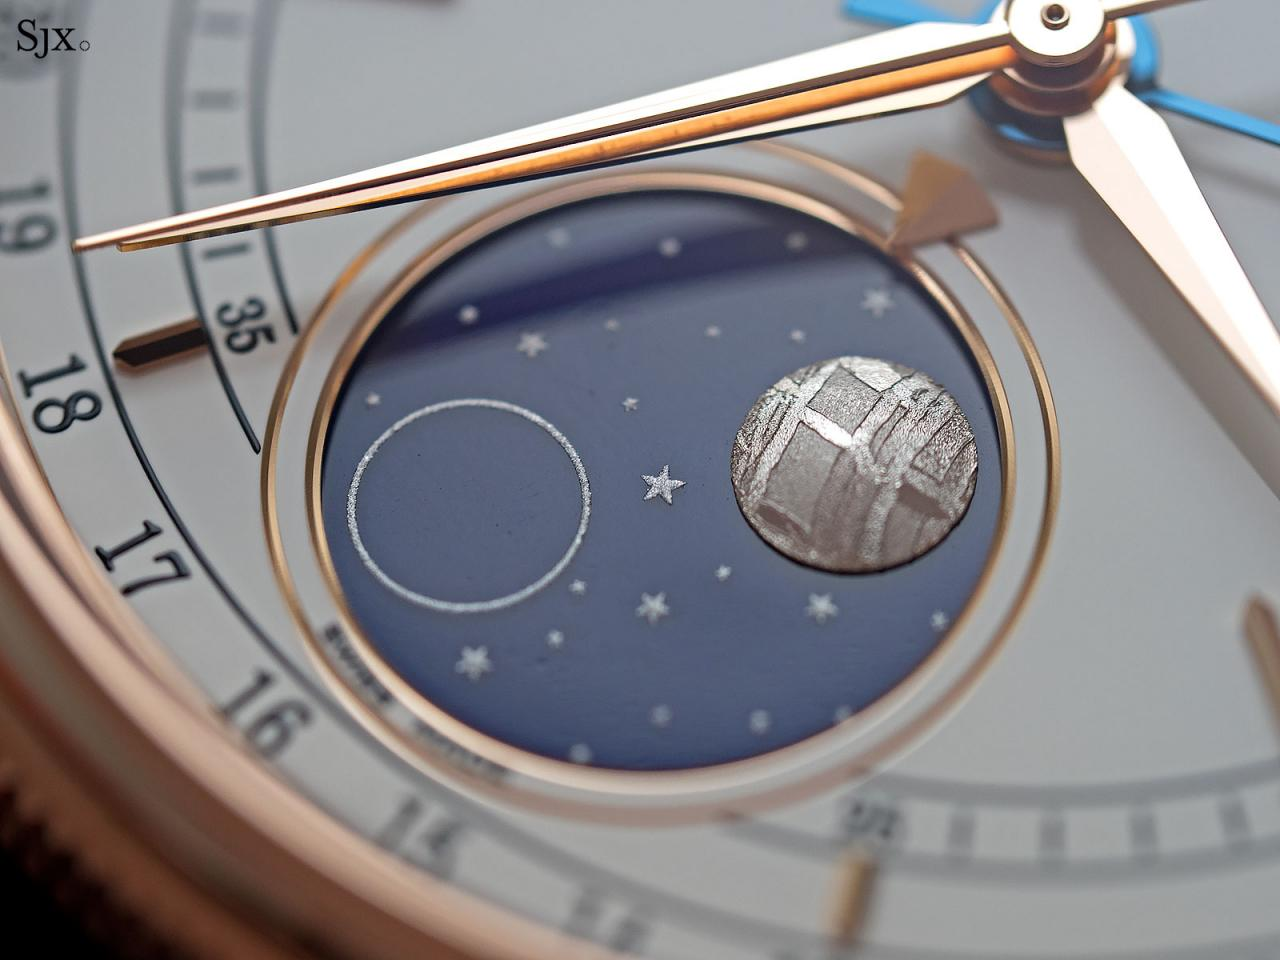 Rolex Cellini Moonphase 50535 review 6